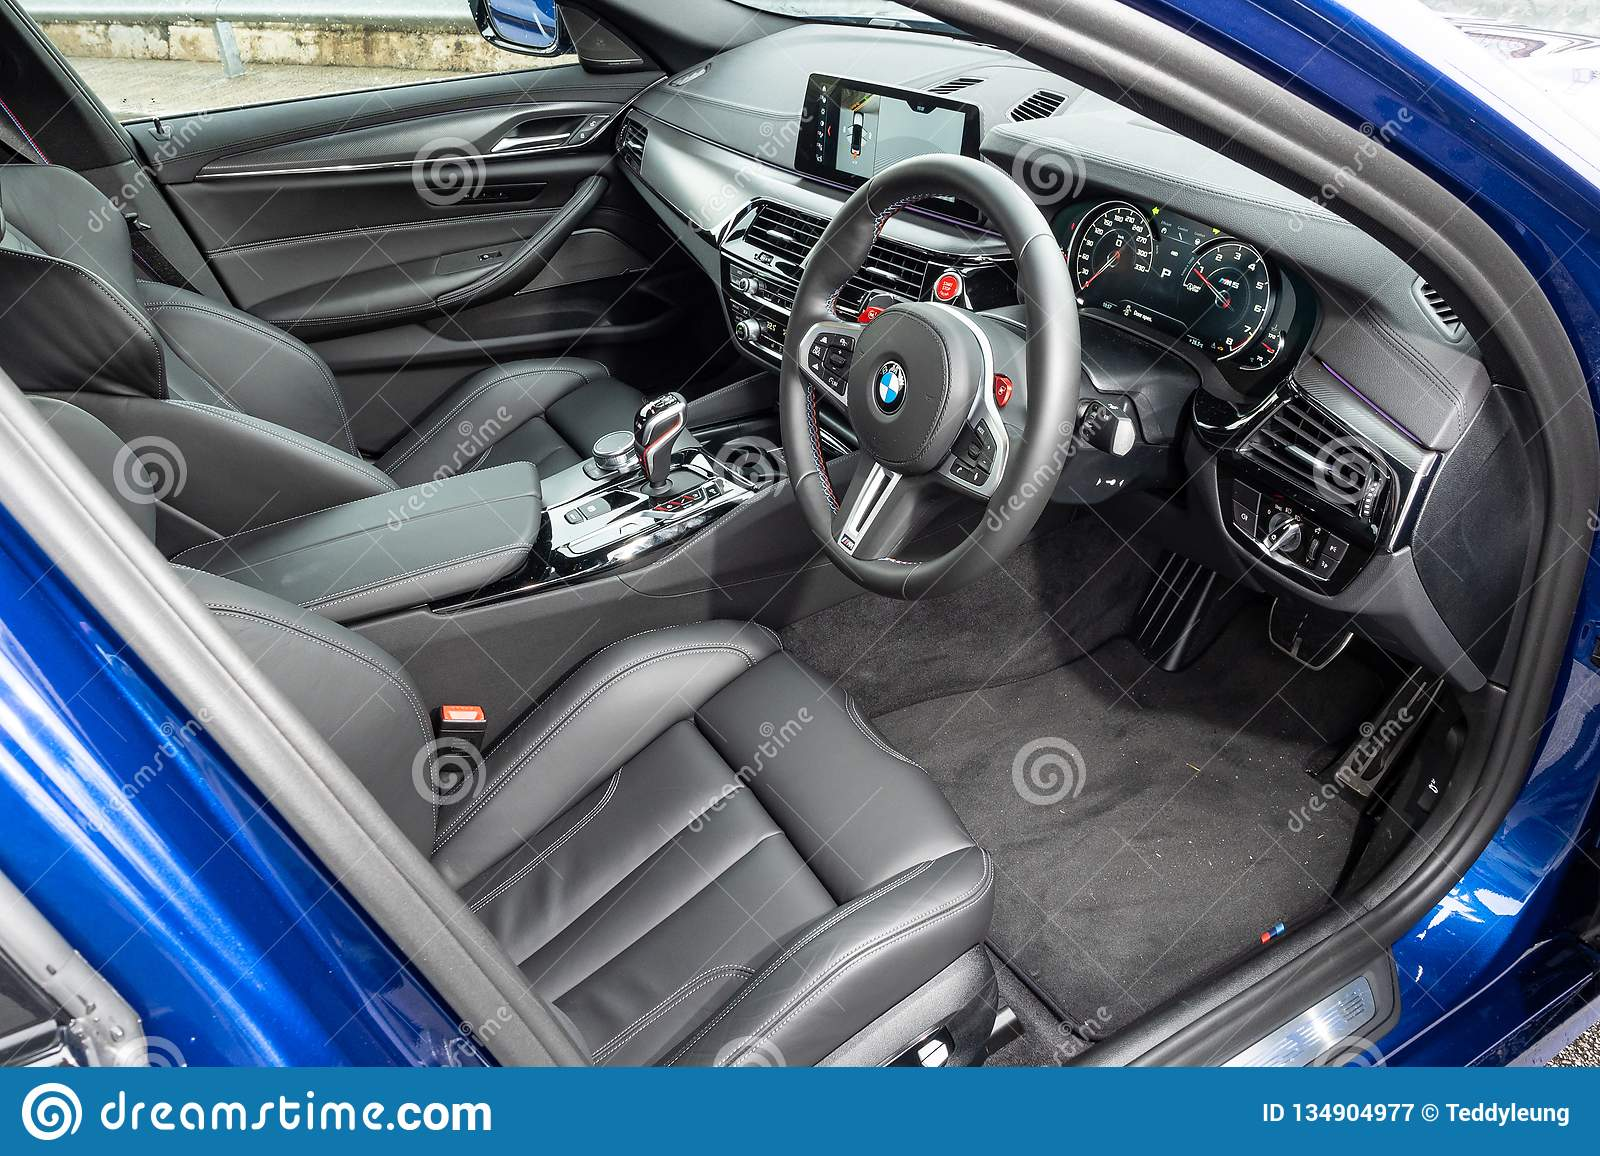 Bmw M5 2018 Interior Editorial Photography Image Of Series 134904977